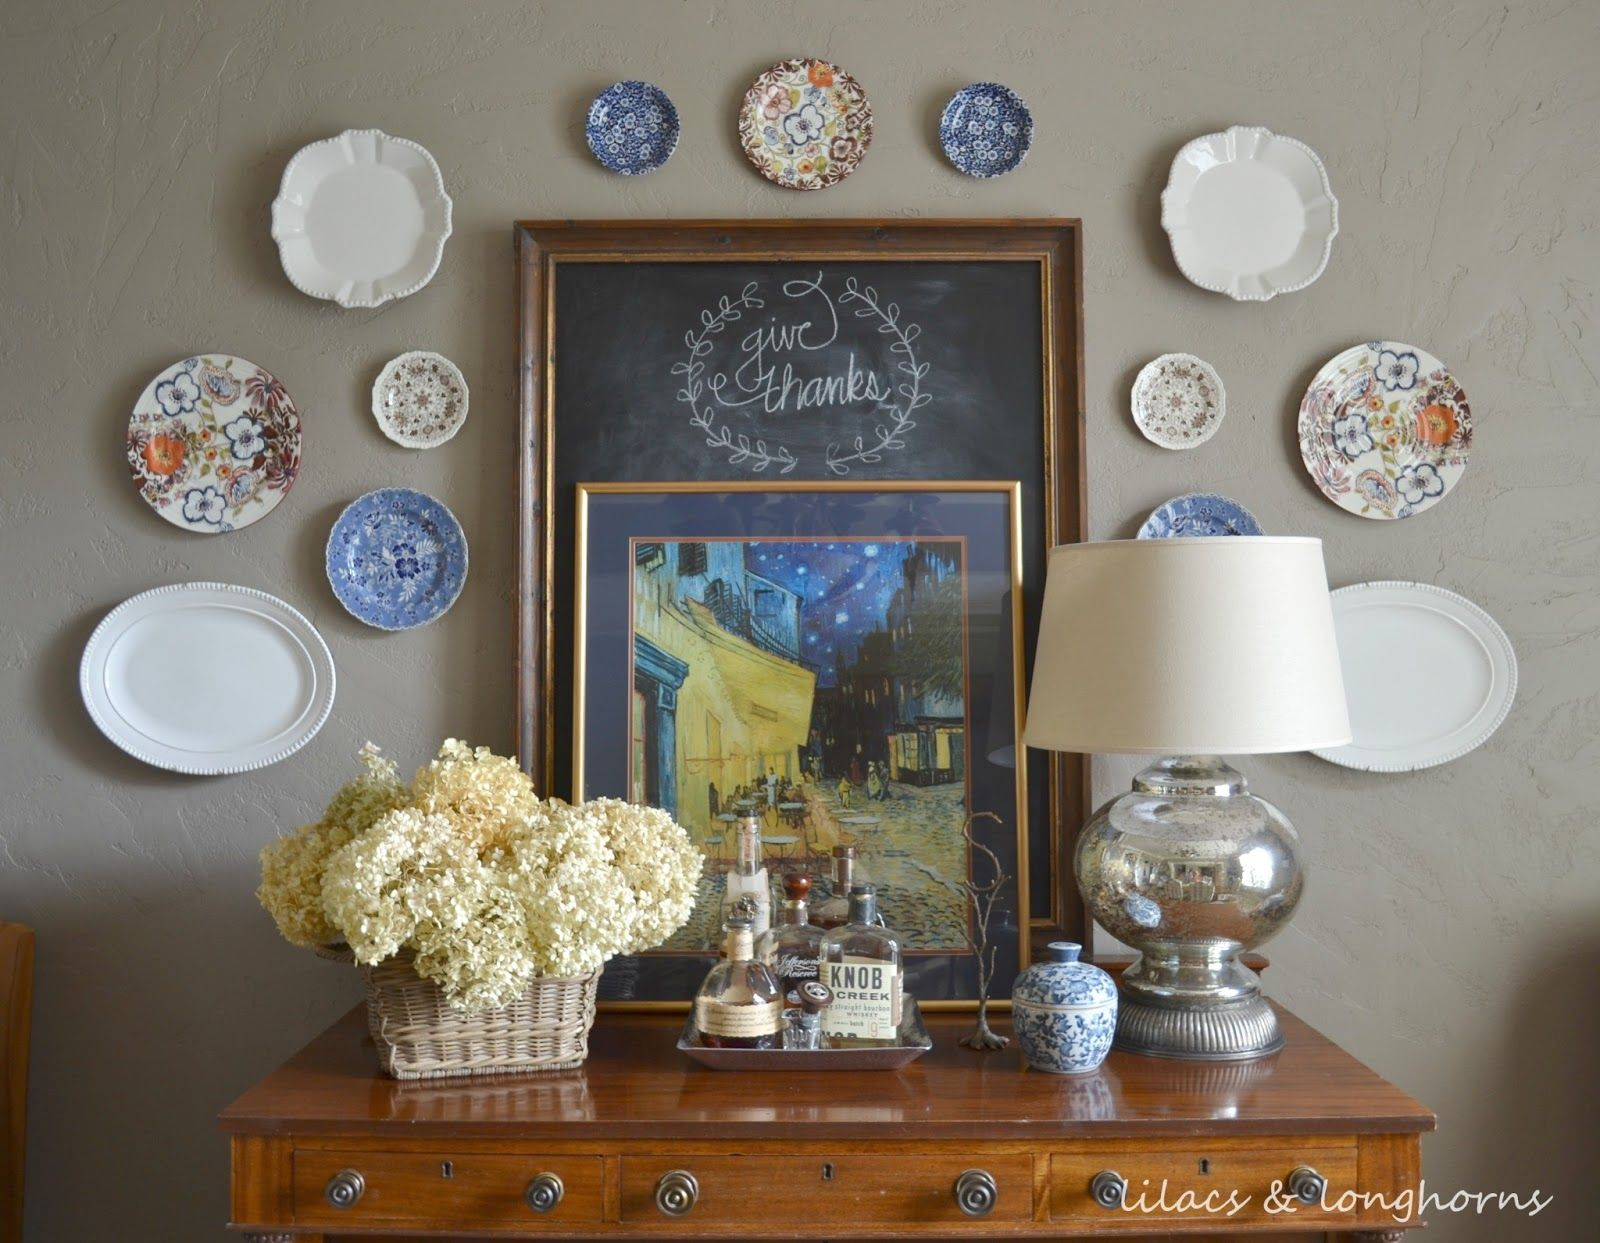 Wall Hanging Plates Tips For Hanging Plates The Best Wayhow To Hang Plates  Lilacs